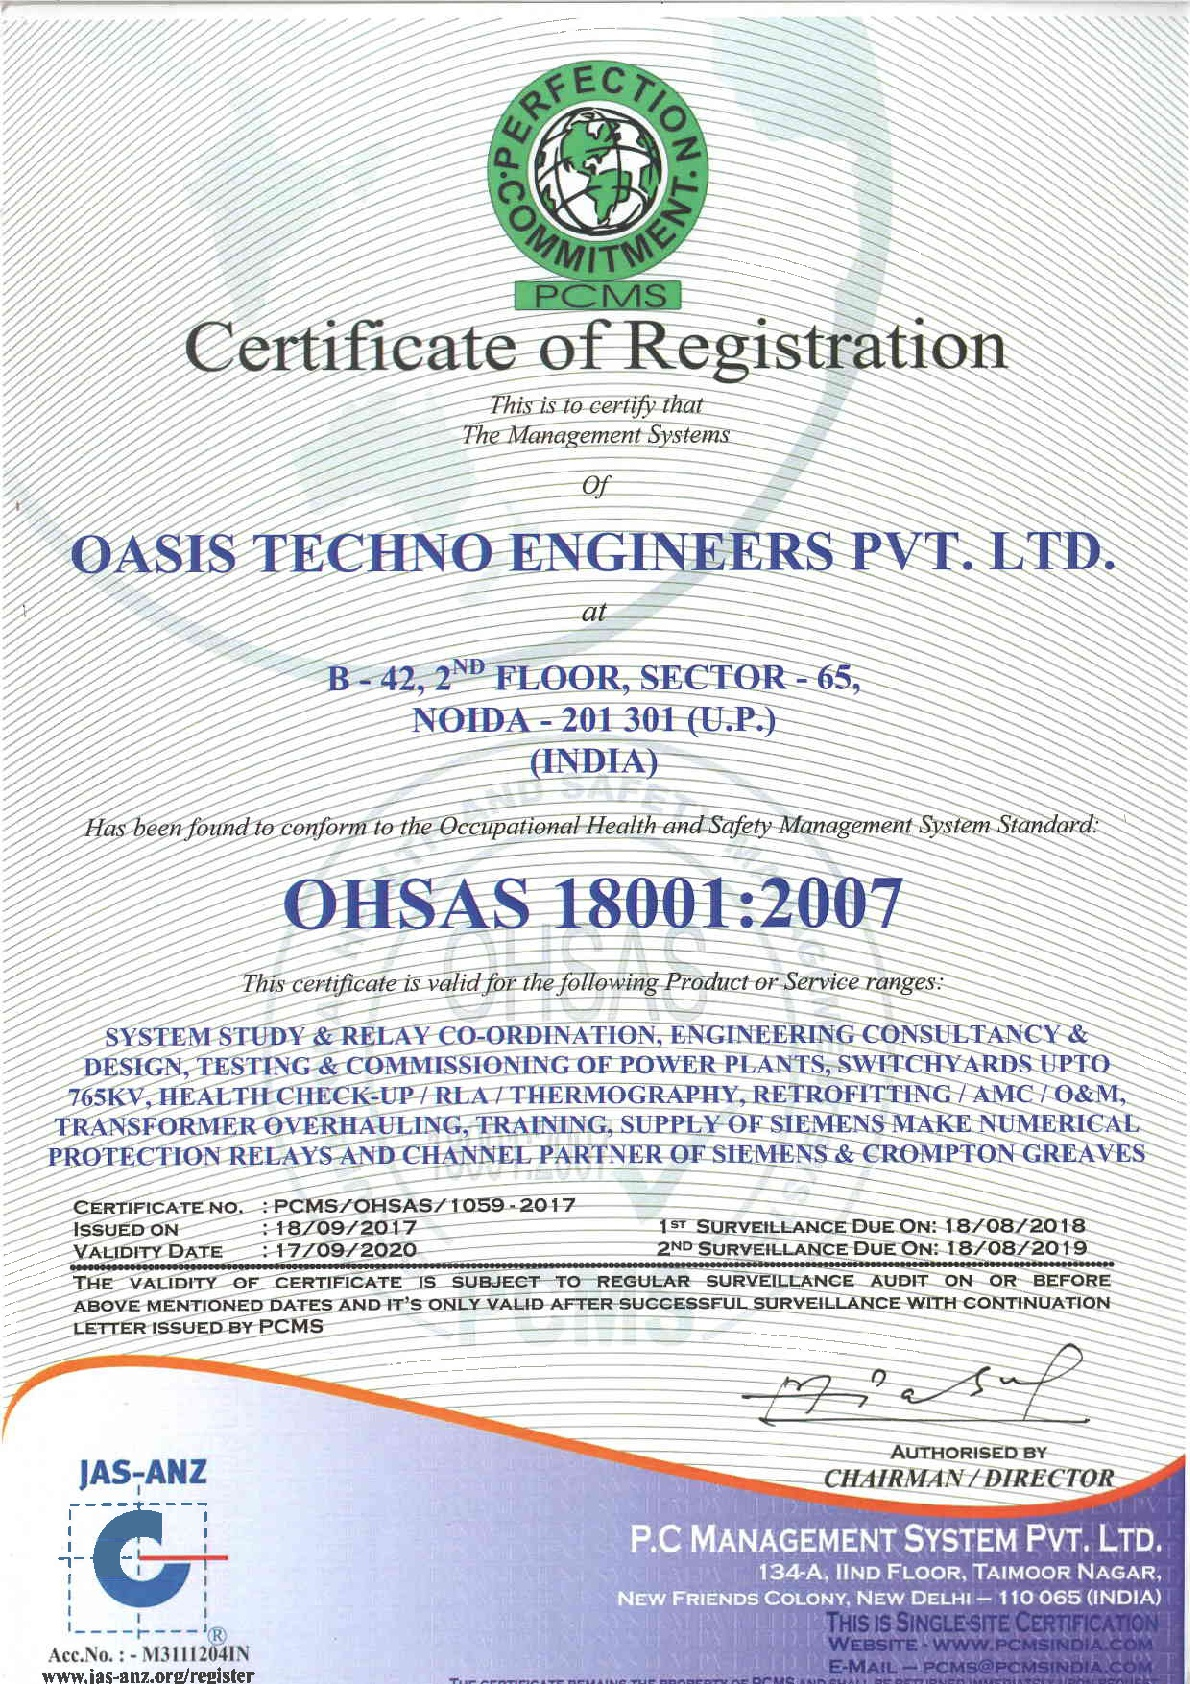 Certifications Oasis Techno Engineers Pvt Ltd